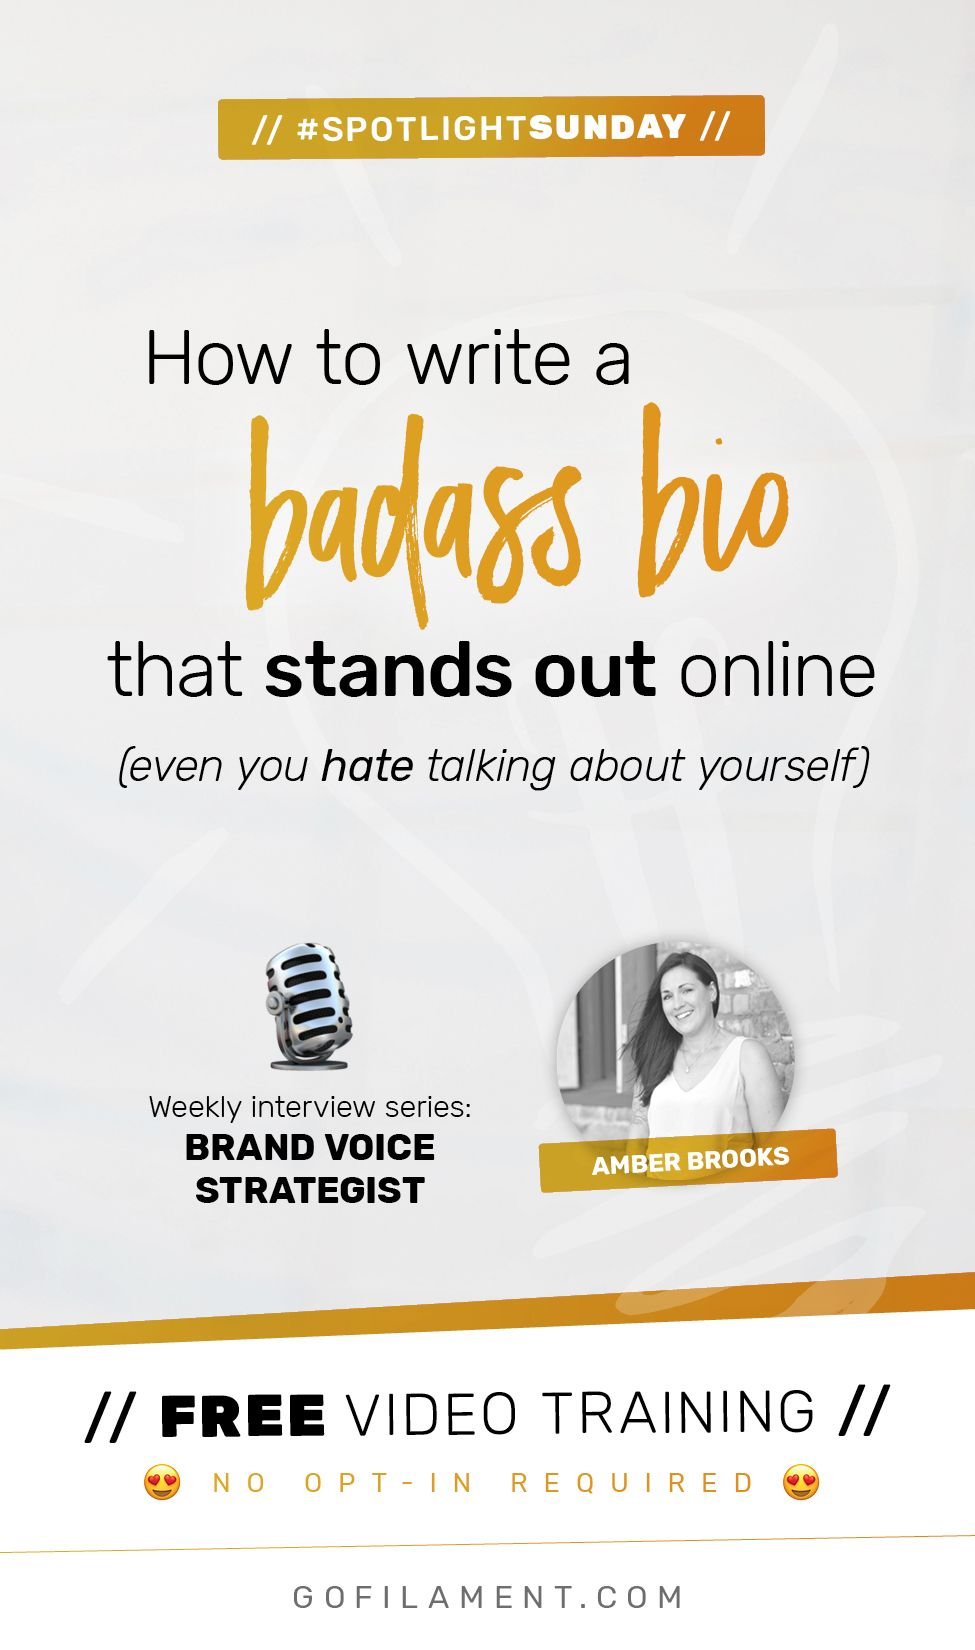 Amber Brooks is a copywriter and brand voice strategist and she's